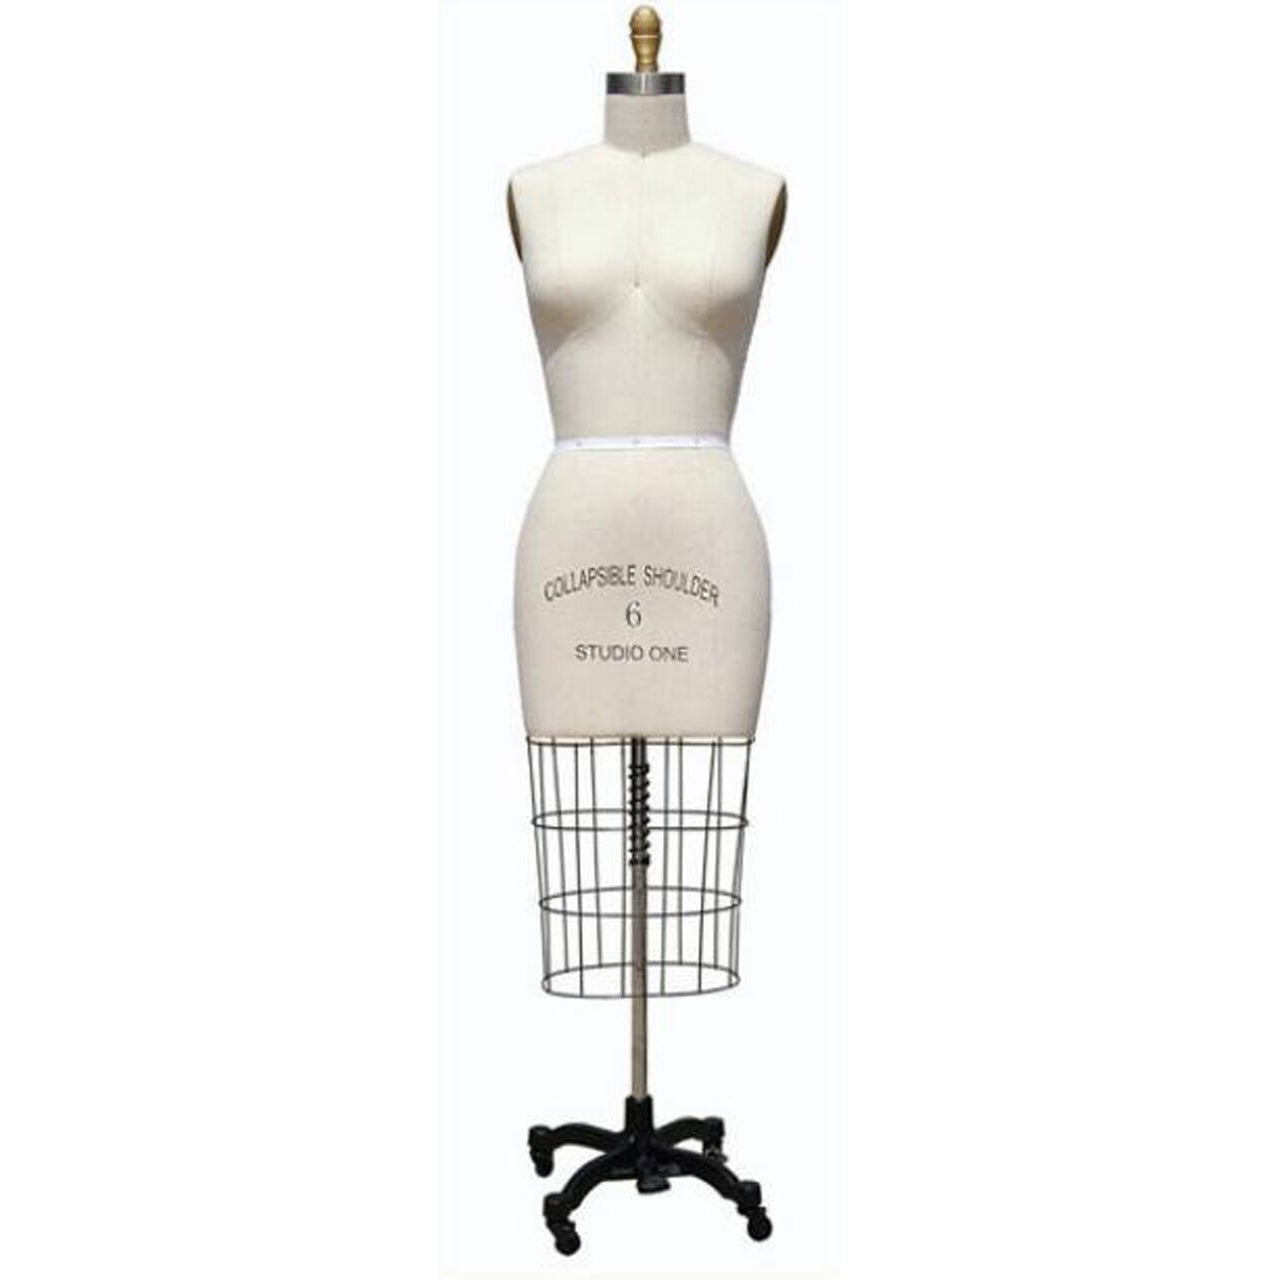 Female Professional Dress Form with Collapsible Shoulders, close up photo of the female professional dress form with collapsible shoulders, sewing mannequin, seamstress mannequin, half body female professional dress form